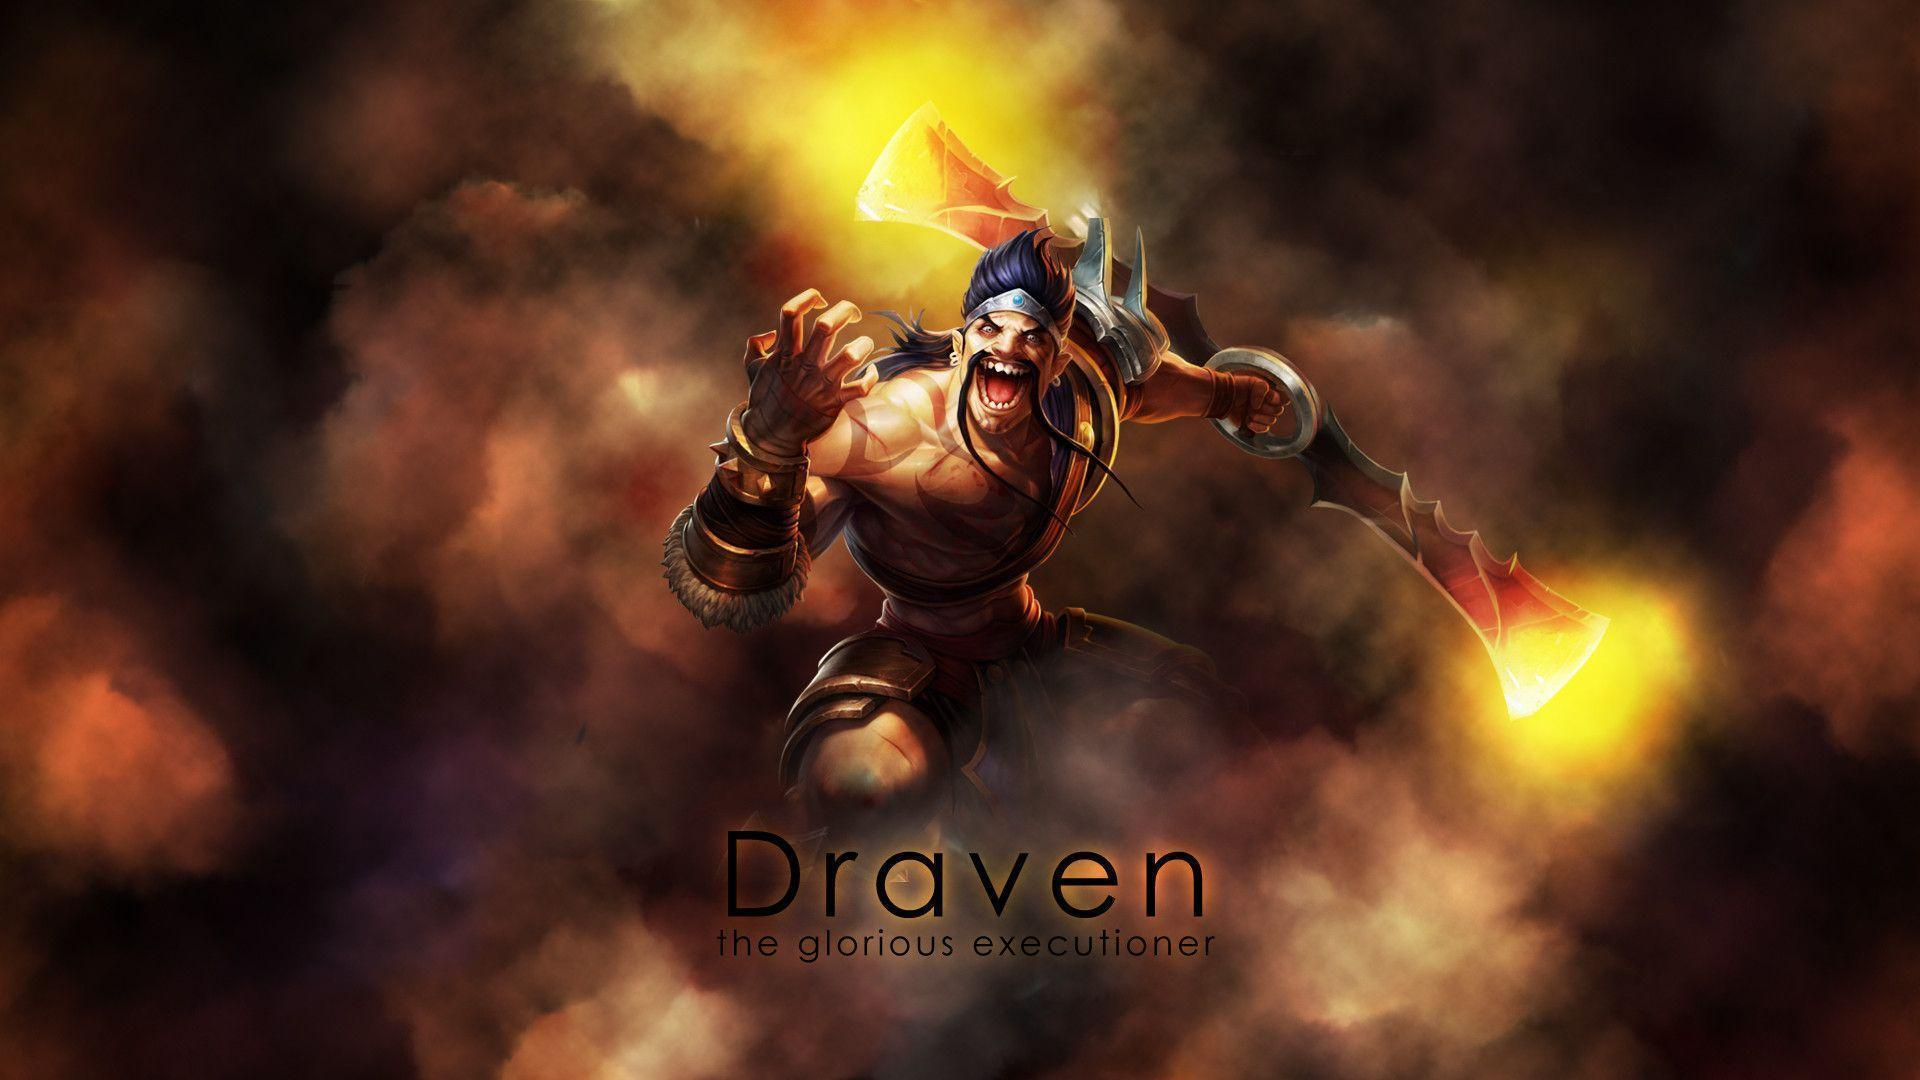 Draven HD Wallpapers And Photos download